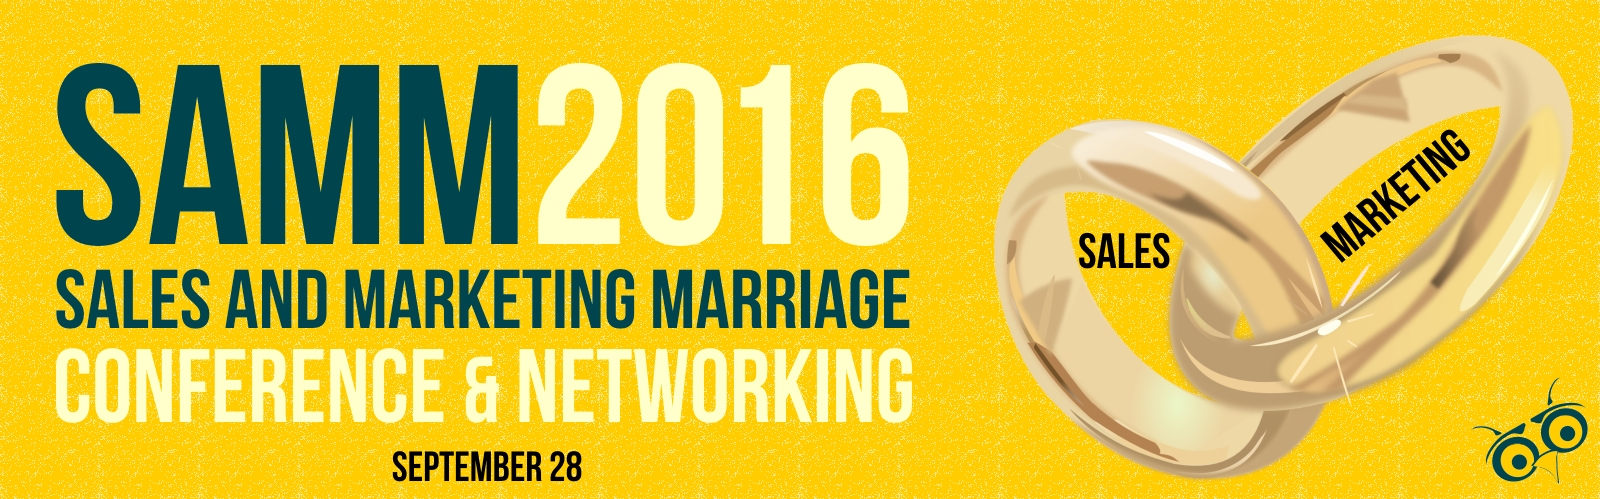 SaMM2016 - The Sales & Marketing Marriage Conference